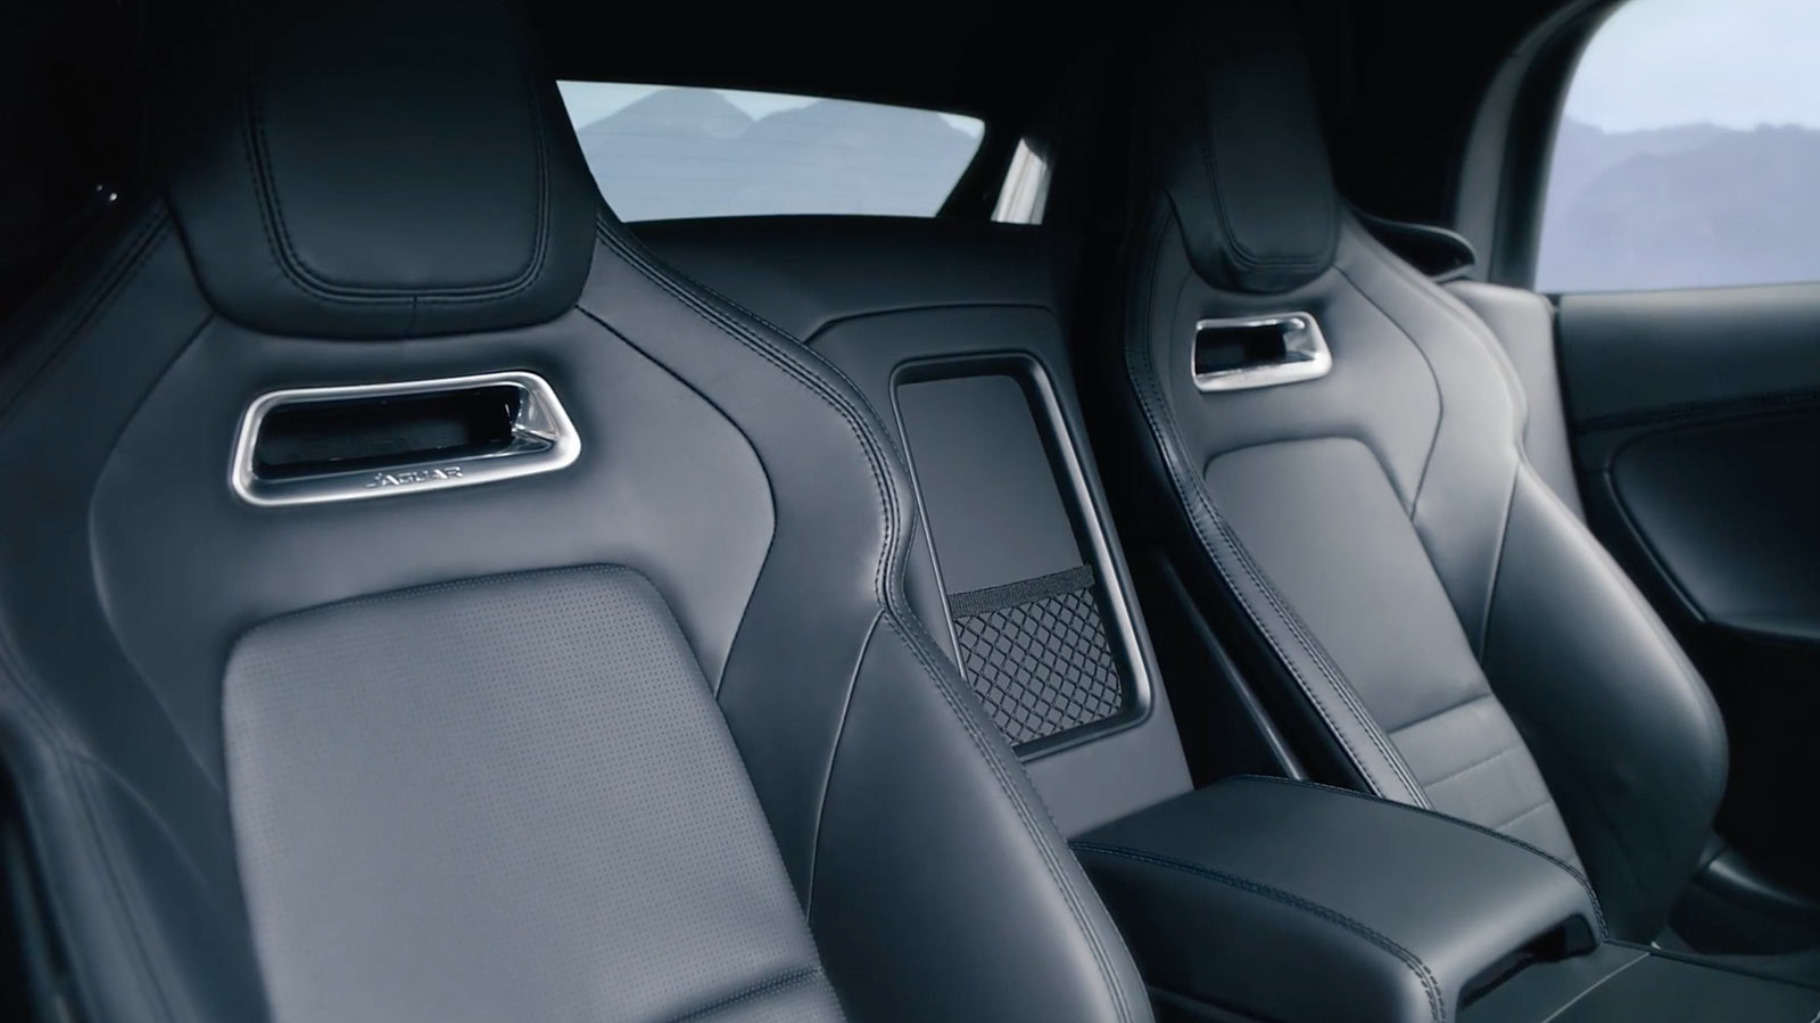 Jaguar F-Type Lightweight Seats.